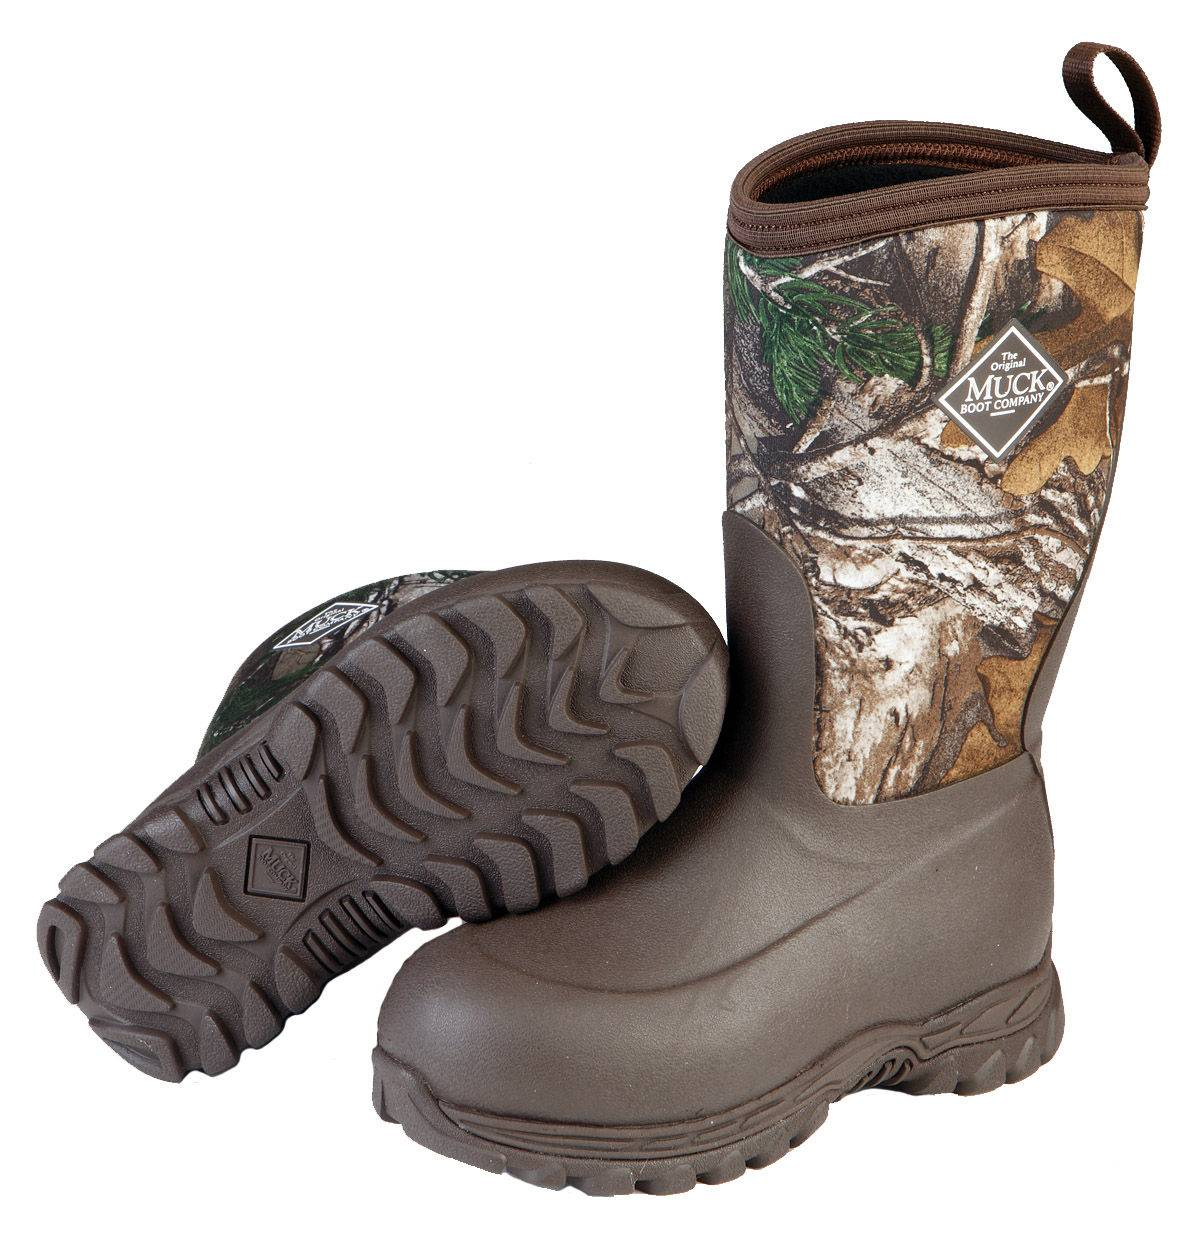 Muck Boots Rugged II - Kids - Realtree Xtra